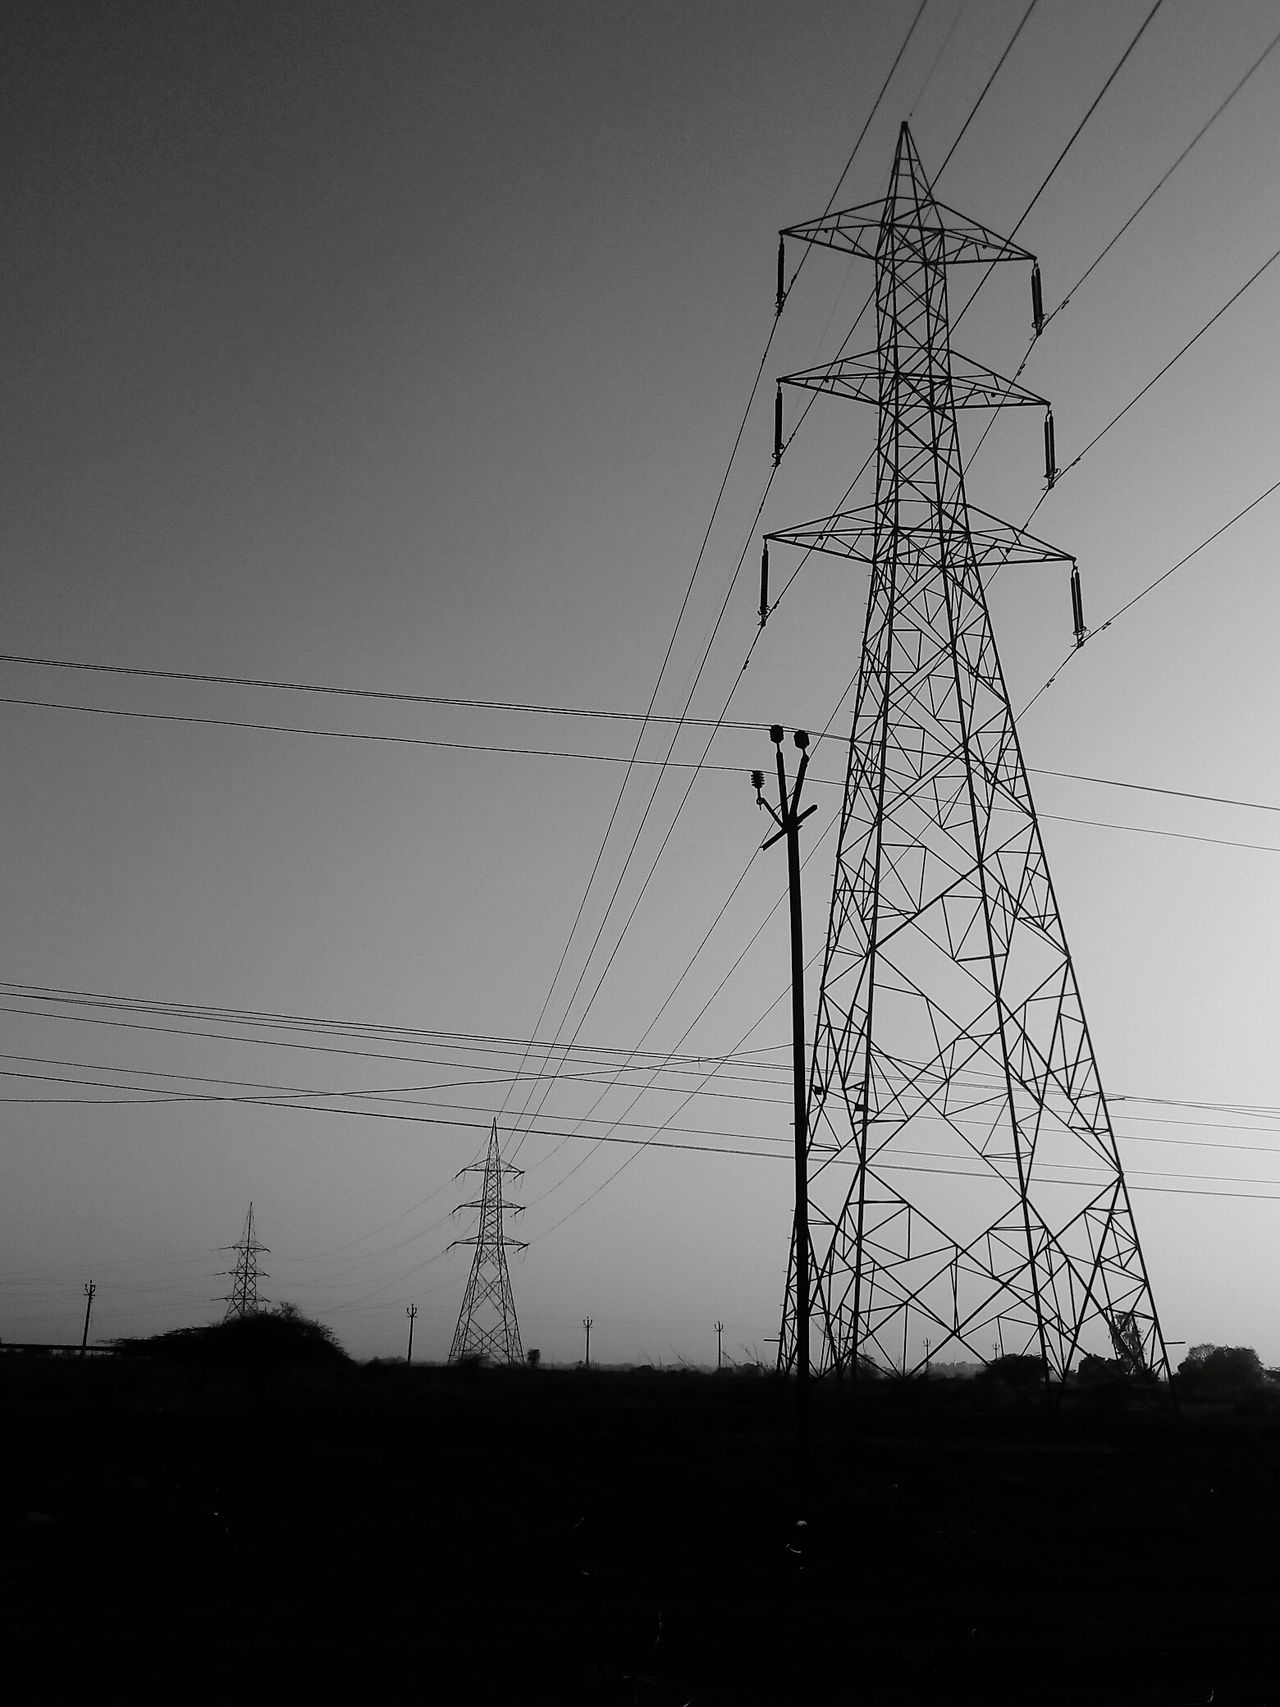 No People Water Technology Wired World Wires And Cables Silhouette Sky Electricity  Welcome To Black Nature Sunlight And Shade Outdoors Day Connectivit Y Asfarasthe Eye Can See EyeEm Gallery EyeEmBestPics Pattern, Texture, Shape And Form From My Point Of View Black And White Travel Photography Travel Best Of EyeEm NoPeopleAround Blackandwhite Photography The Great Outdoors - 2017 EyeEm Awards